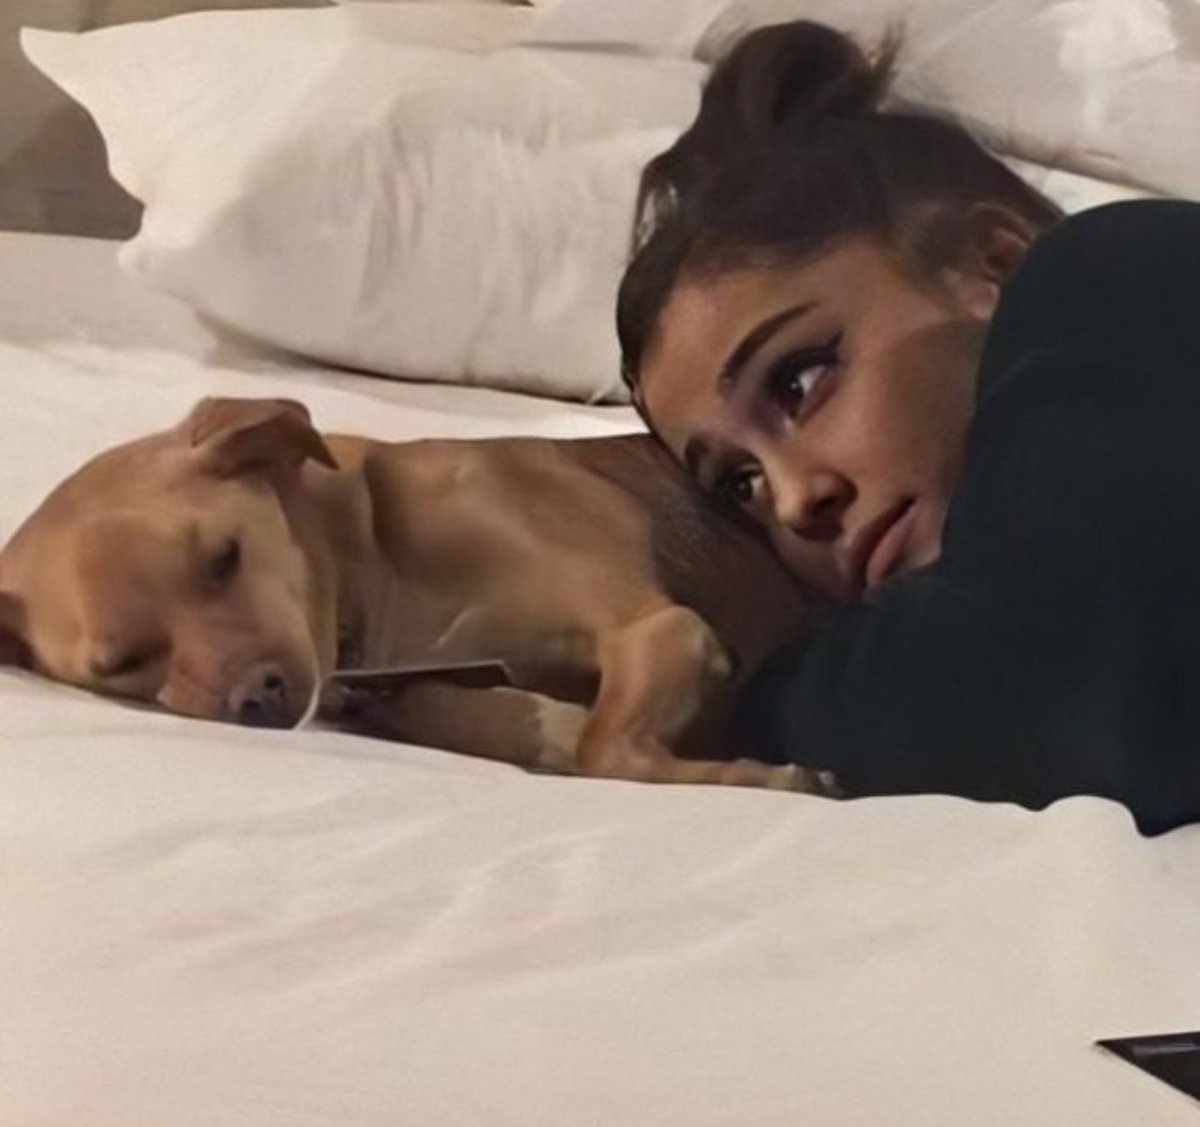 Me looking after Ari and giving her my love and support when she is sick #GetWellSoonAriana